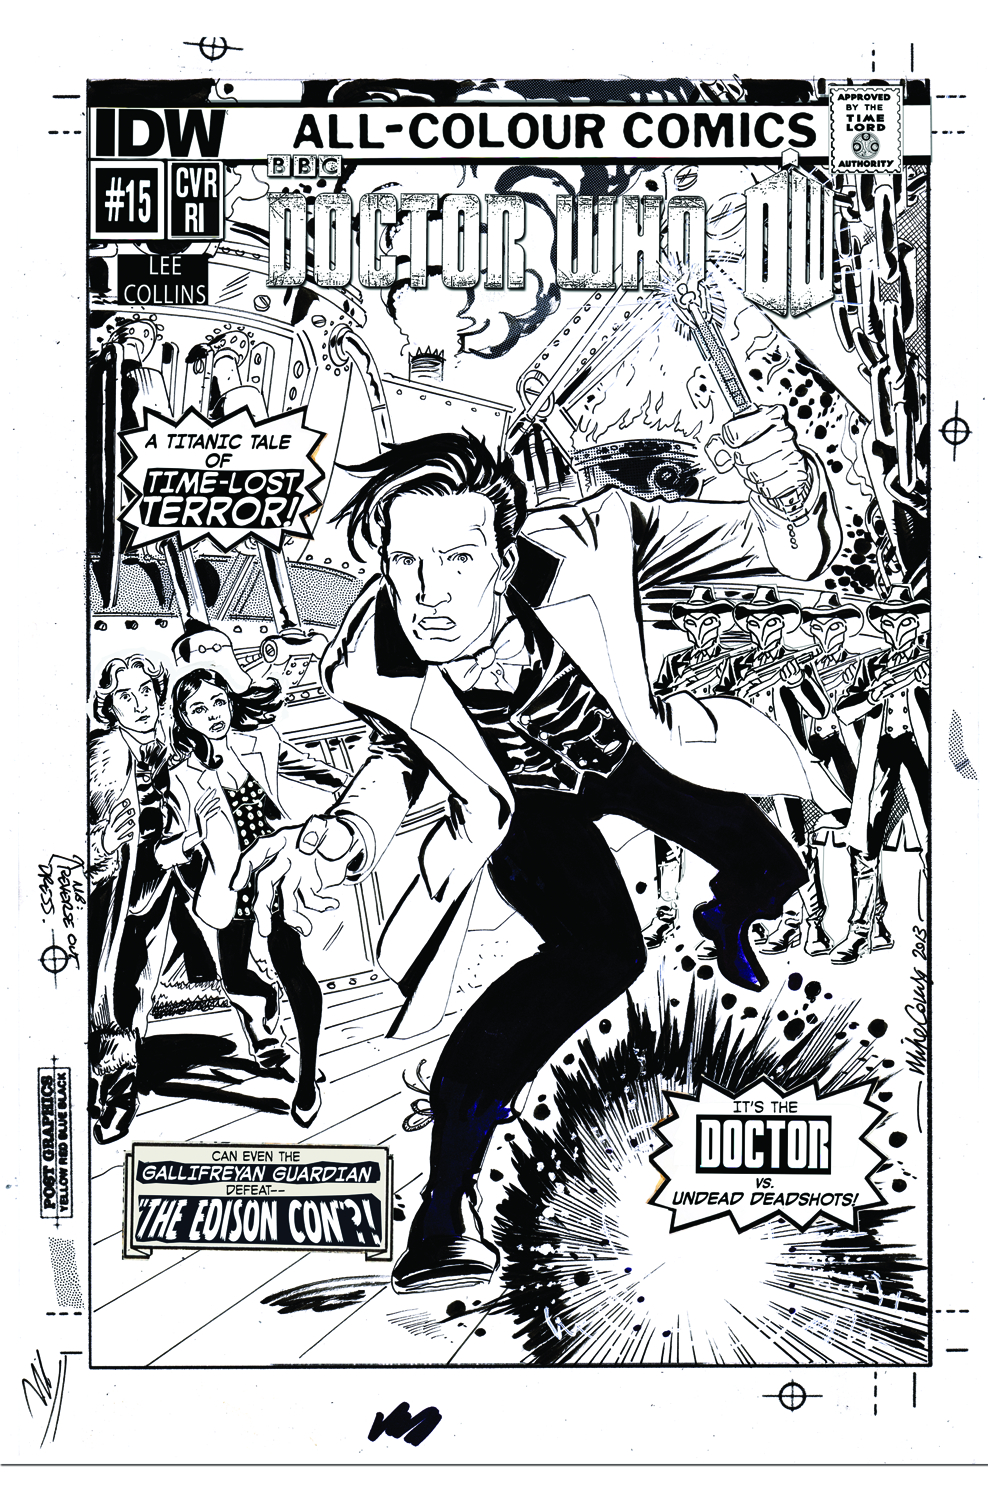 DOCTOR WHO VOL 3 #15 FREE 10 COPY INCV